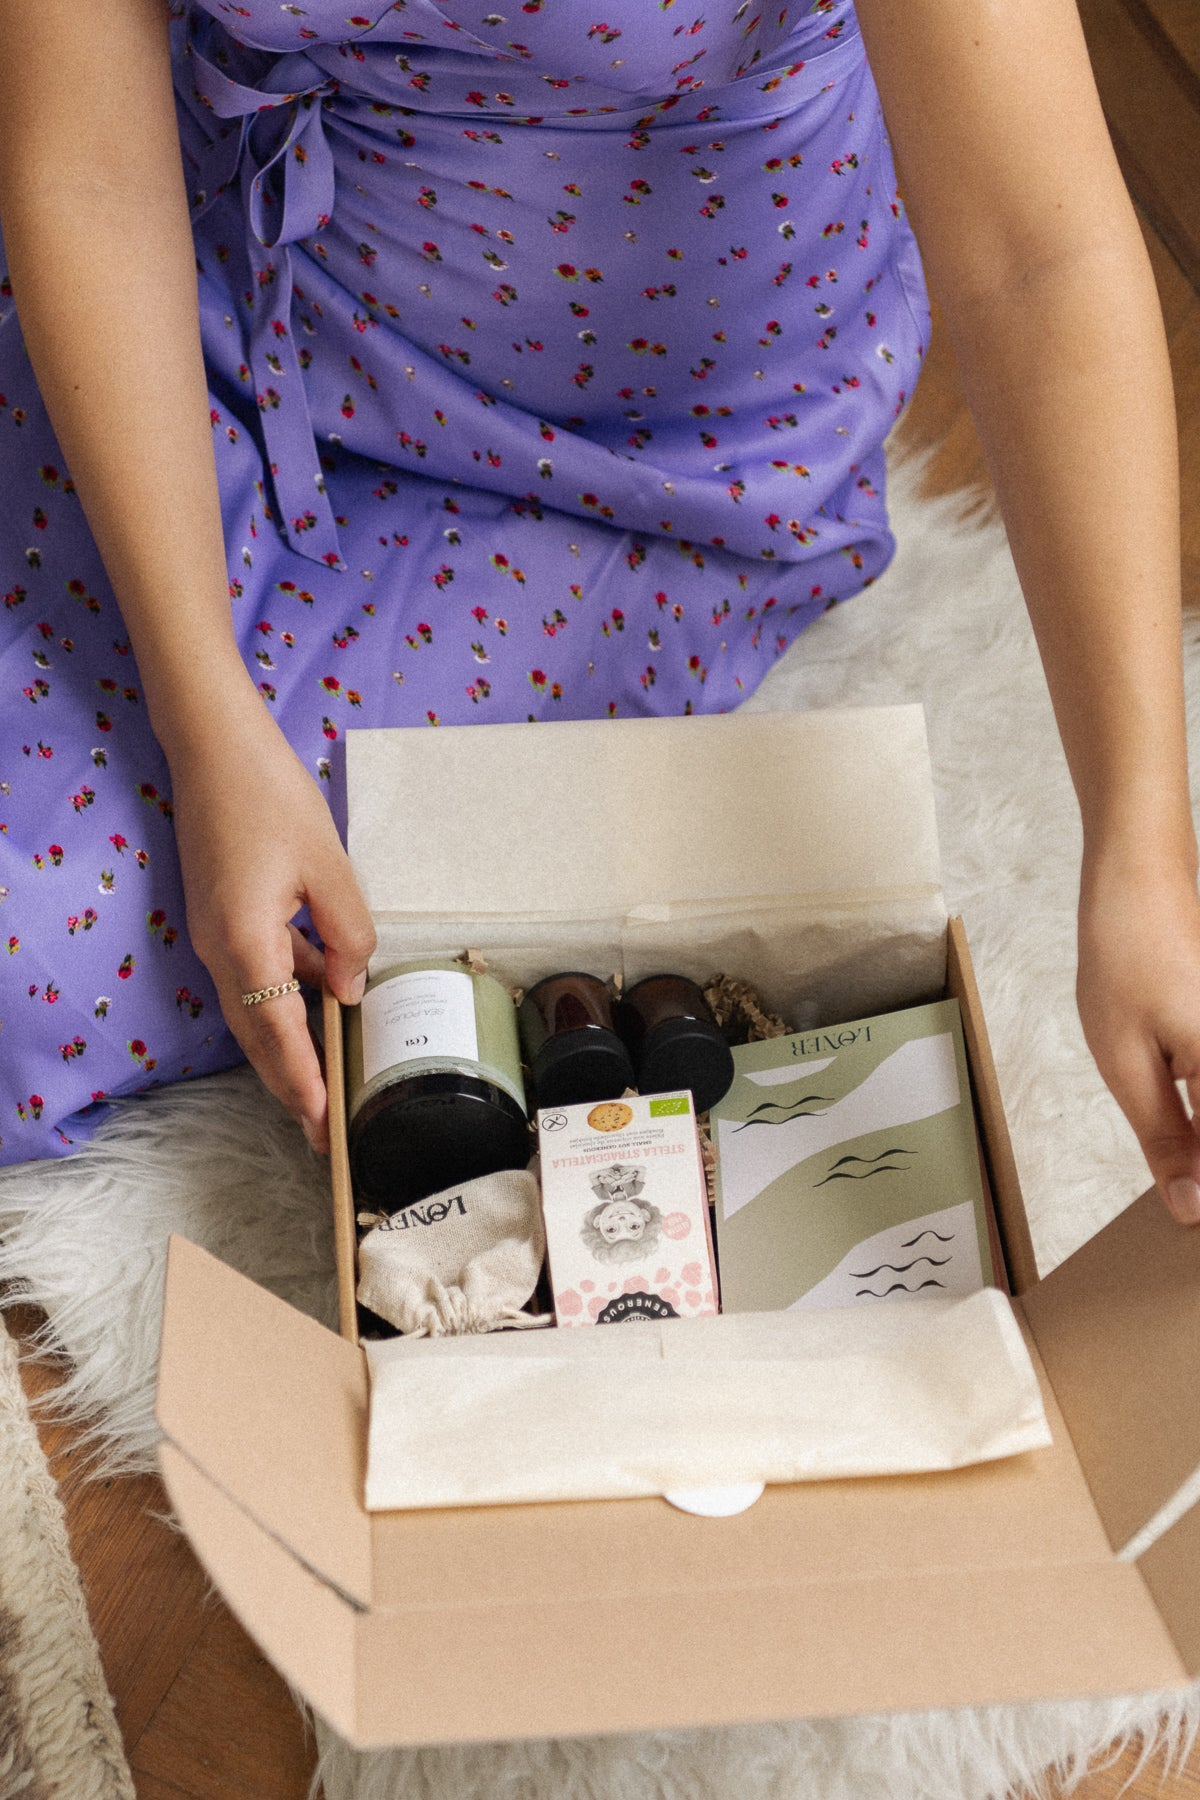 woman is sitting on the floor and opens her loner self-care box